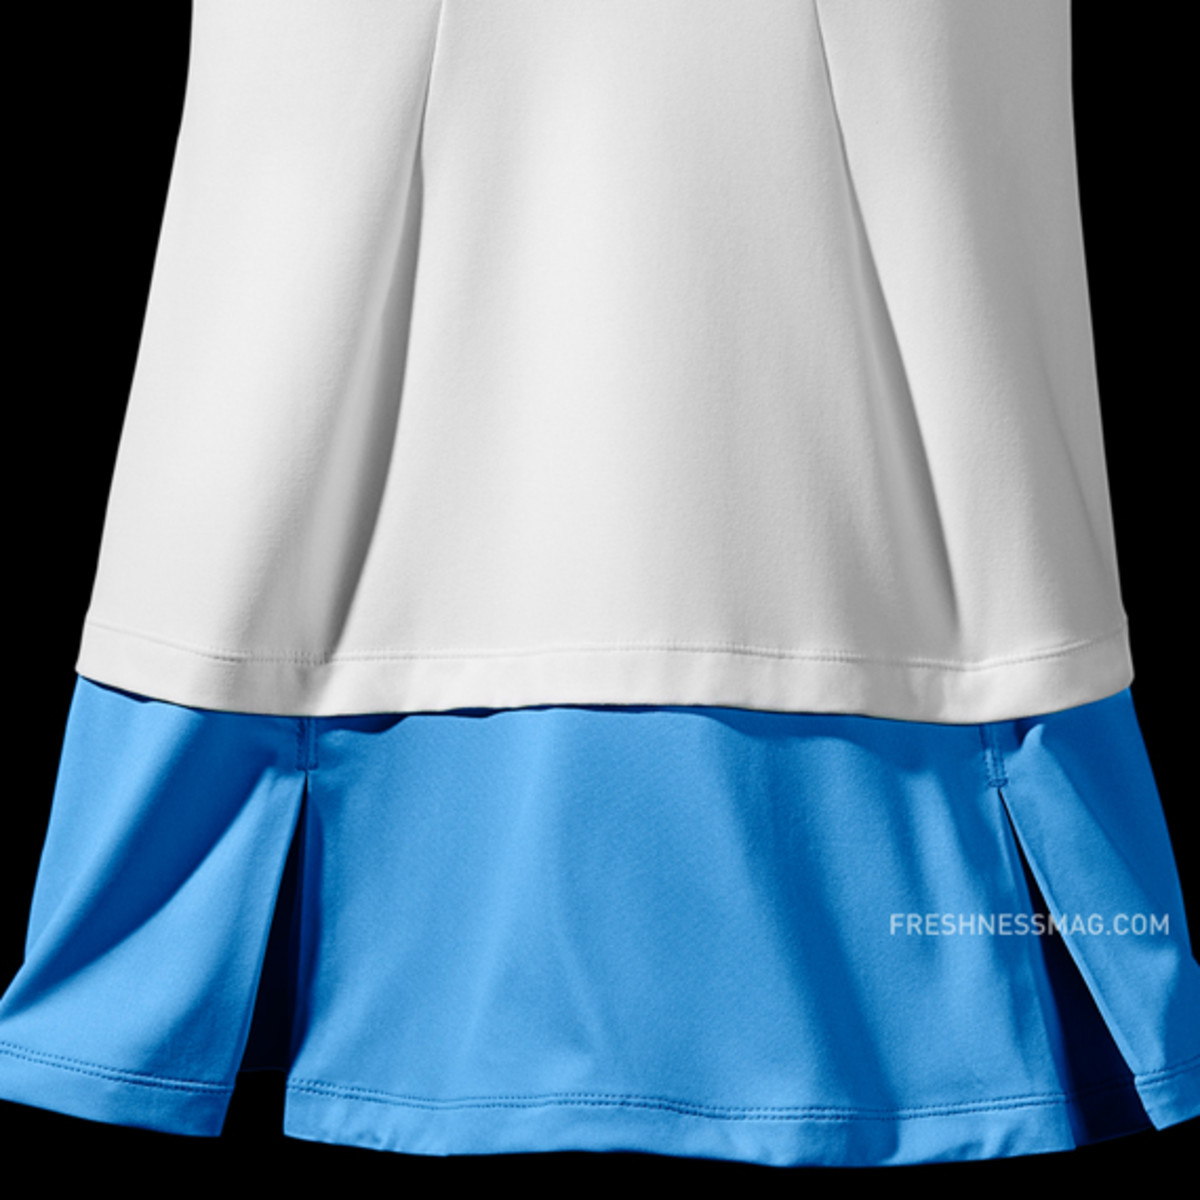 nike-tennis-2011-australian-open-serena-williams-10